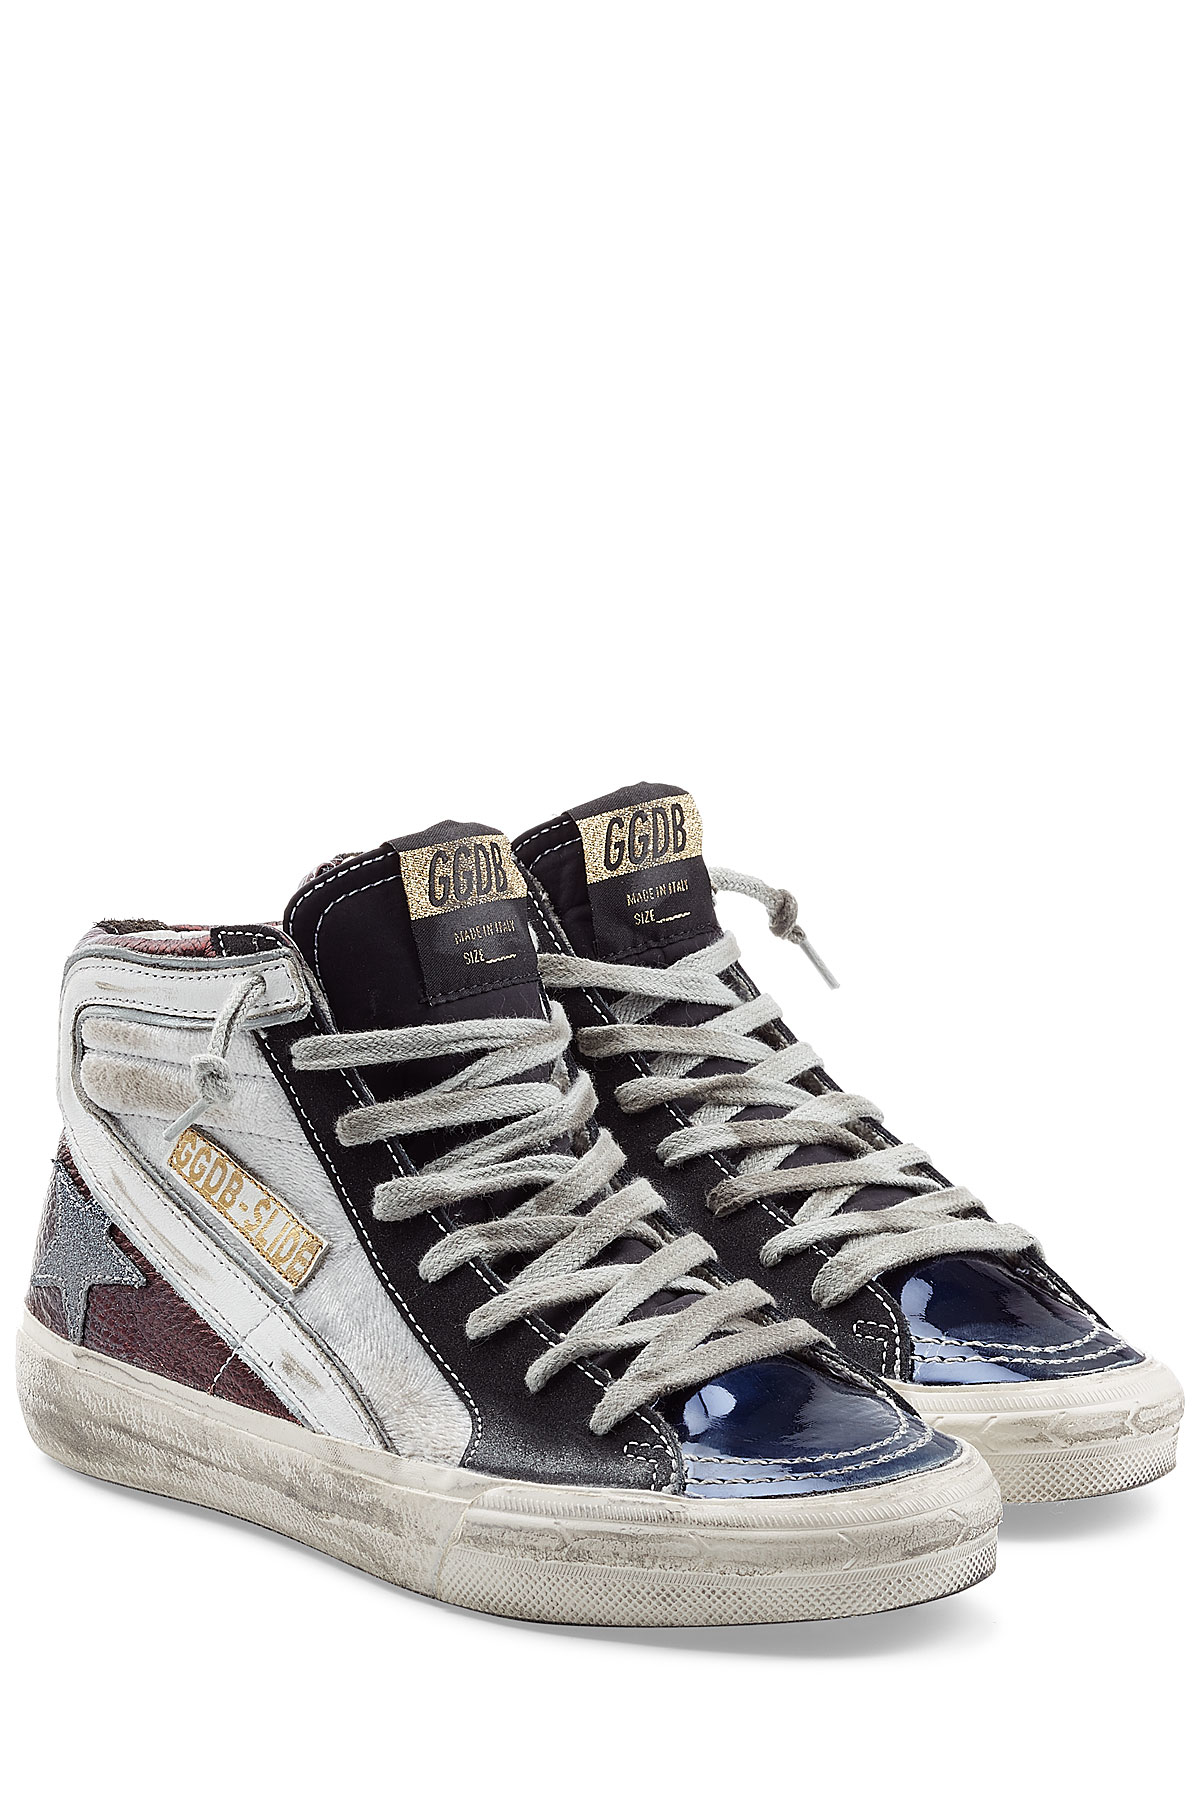 Lyst Golden Goose Deluxe Brand High Top Slide Leather